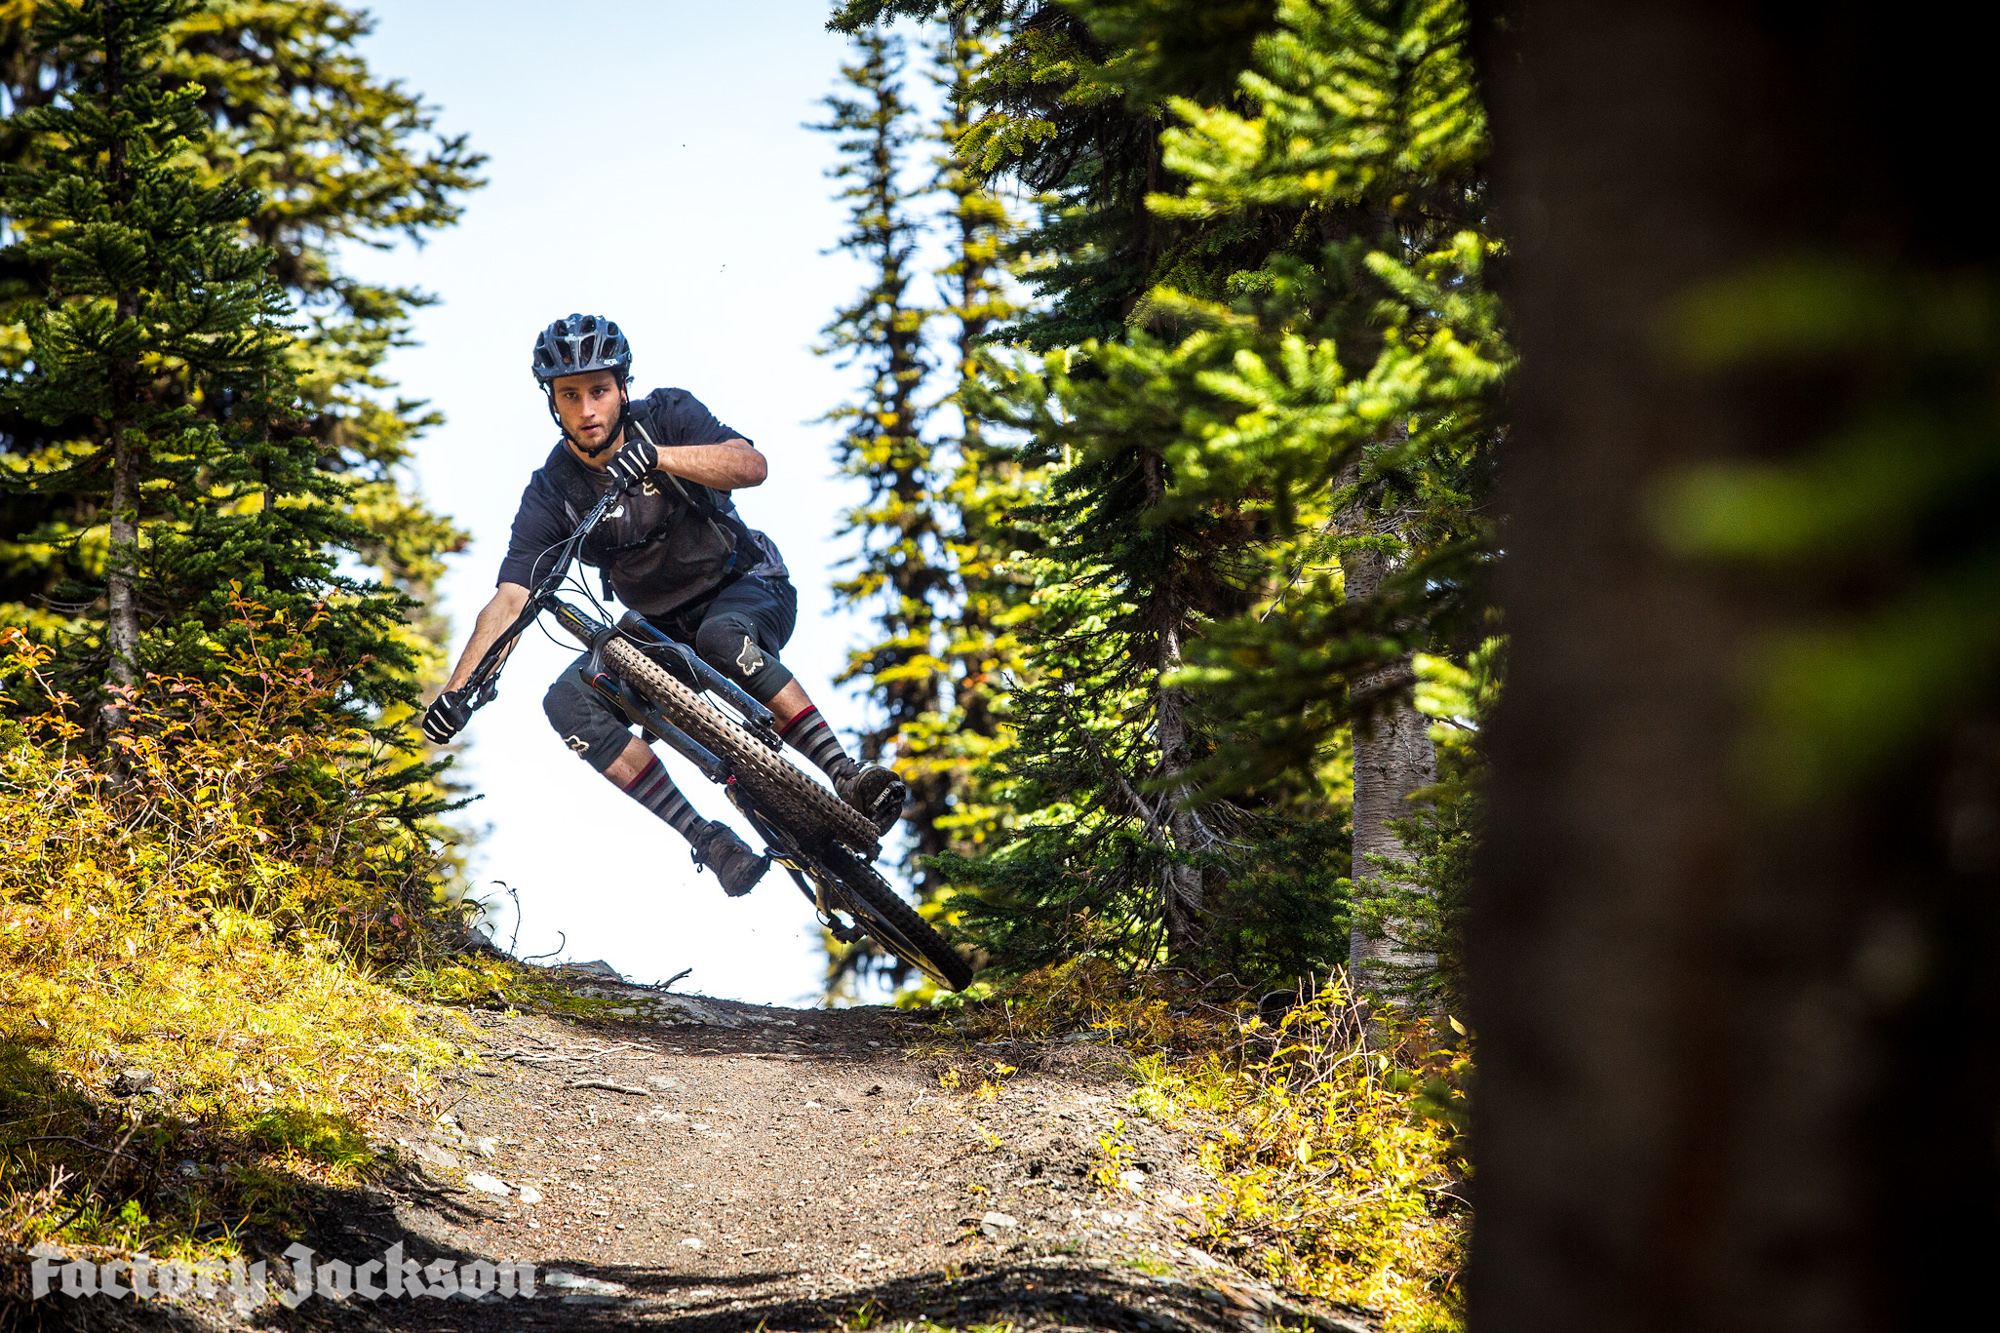 Connor Fearon shreds the Kona Hei Hei at Retallack Lodge